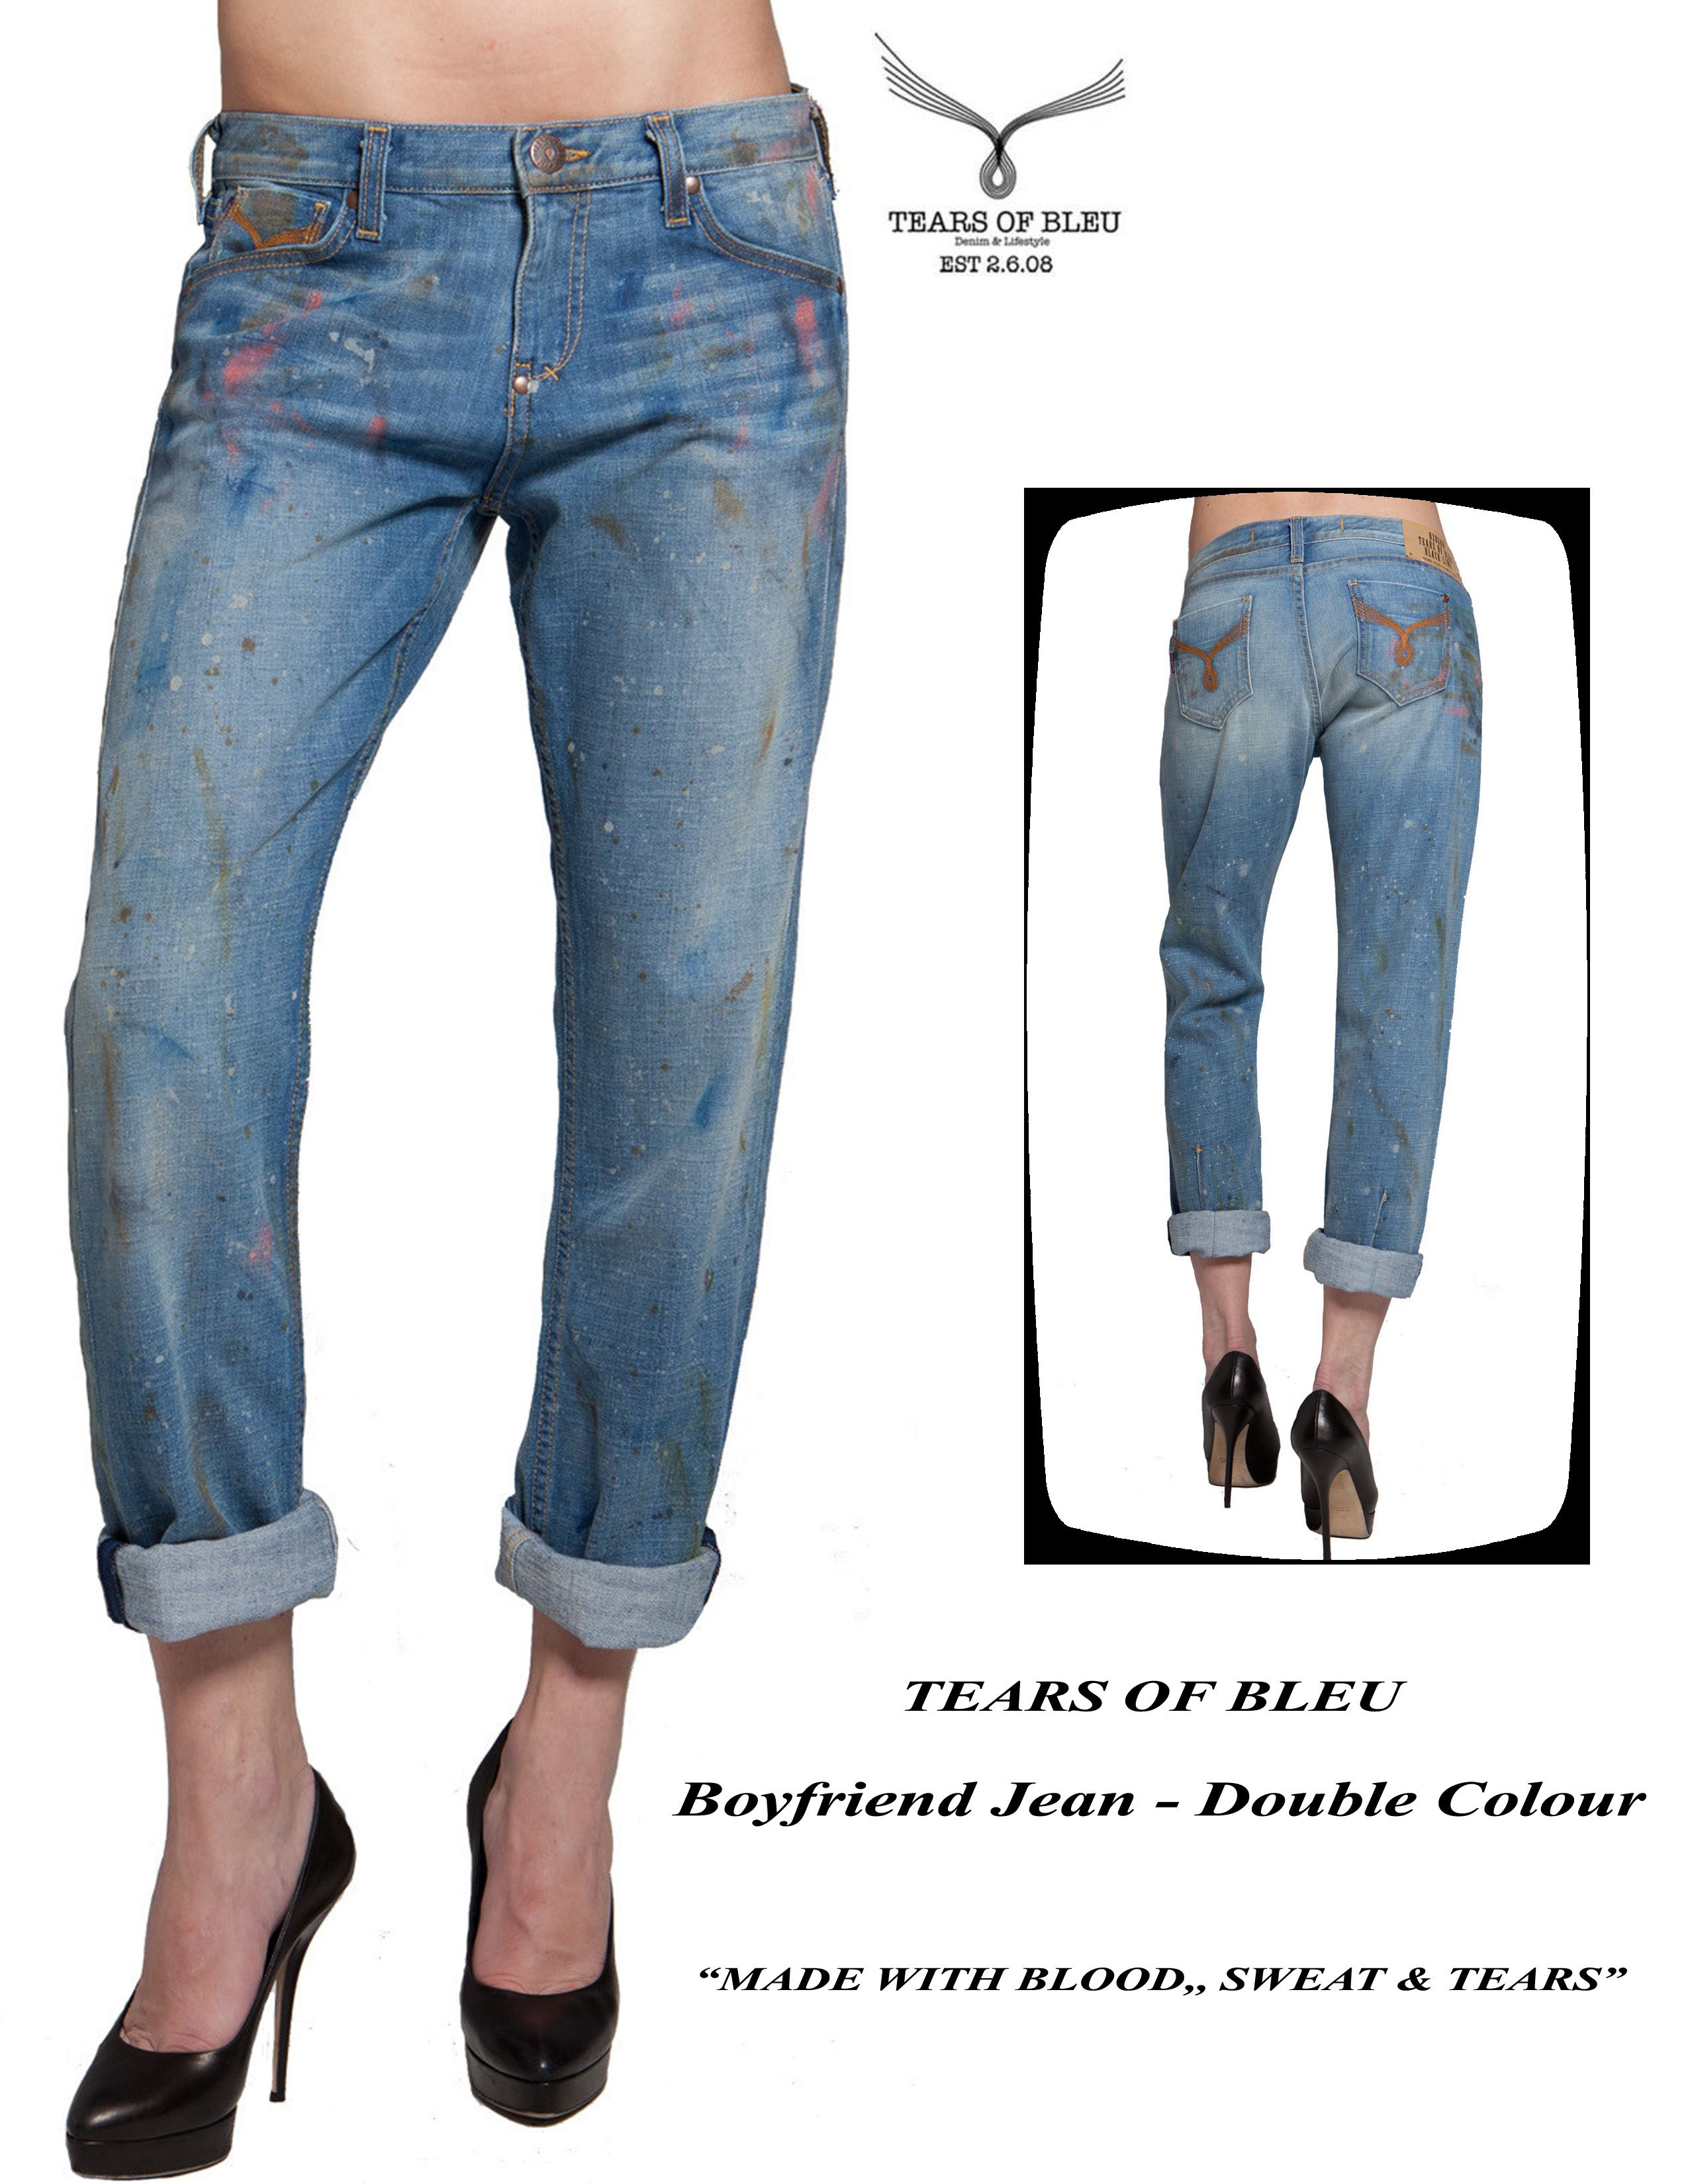 MY BOYFRIEND JEANS ROCK. Wear them with heels and a simple white T shirt.